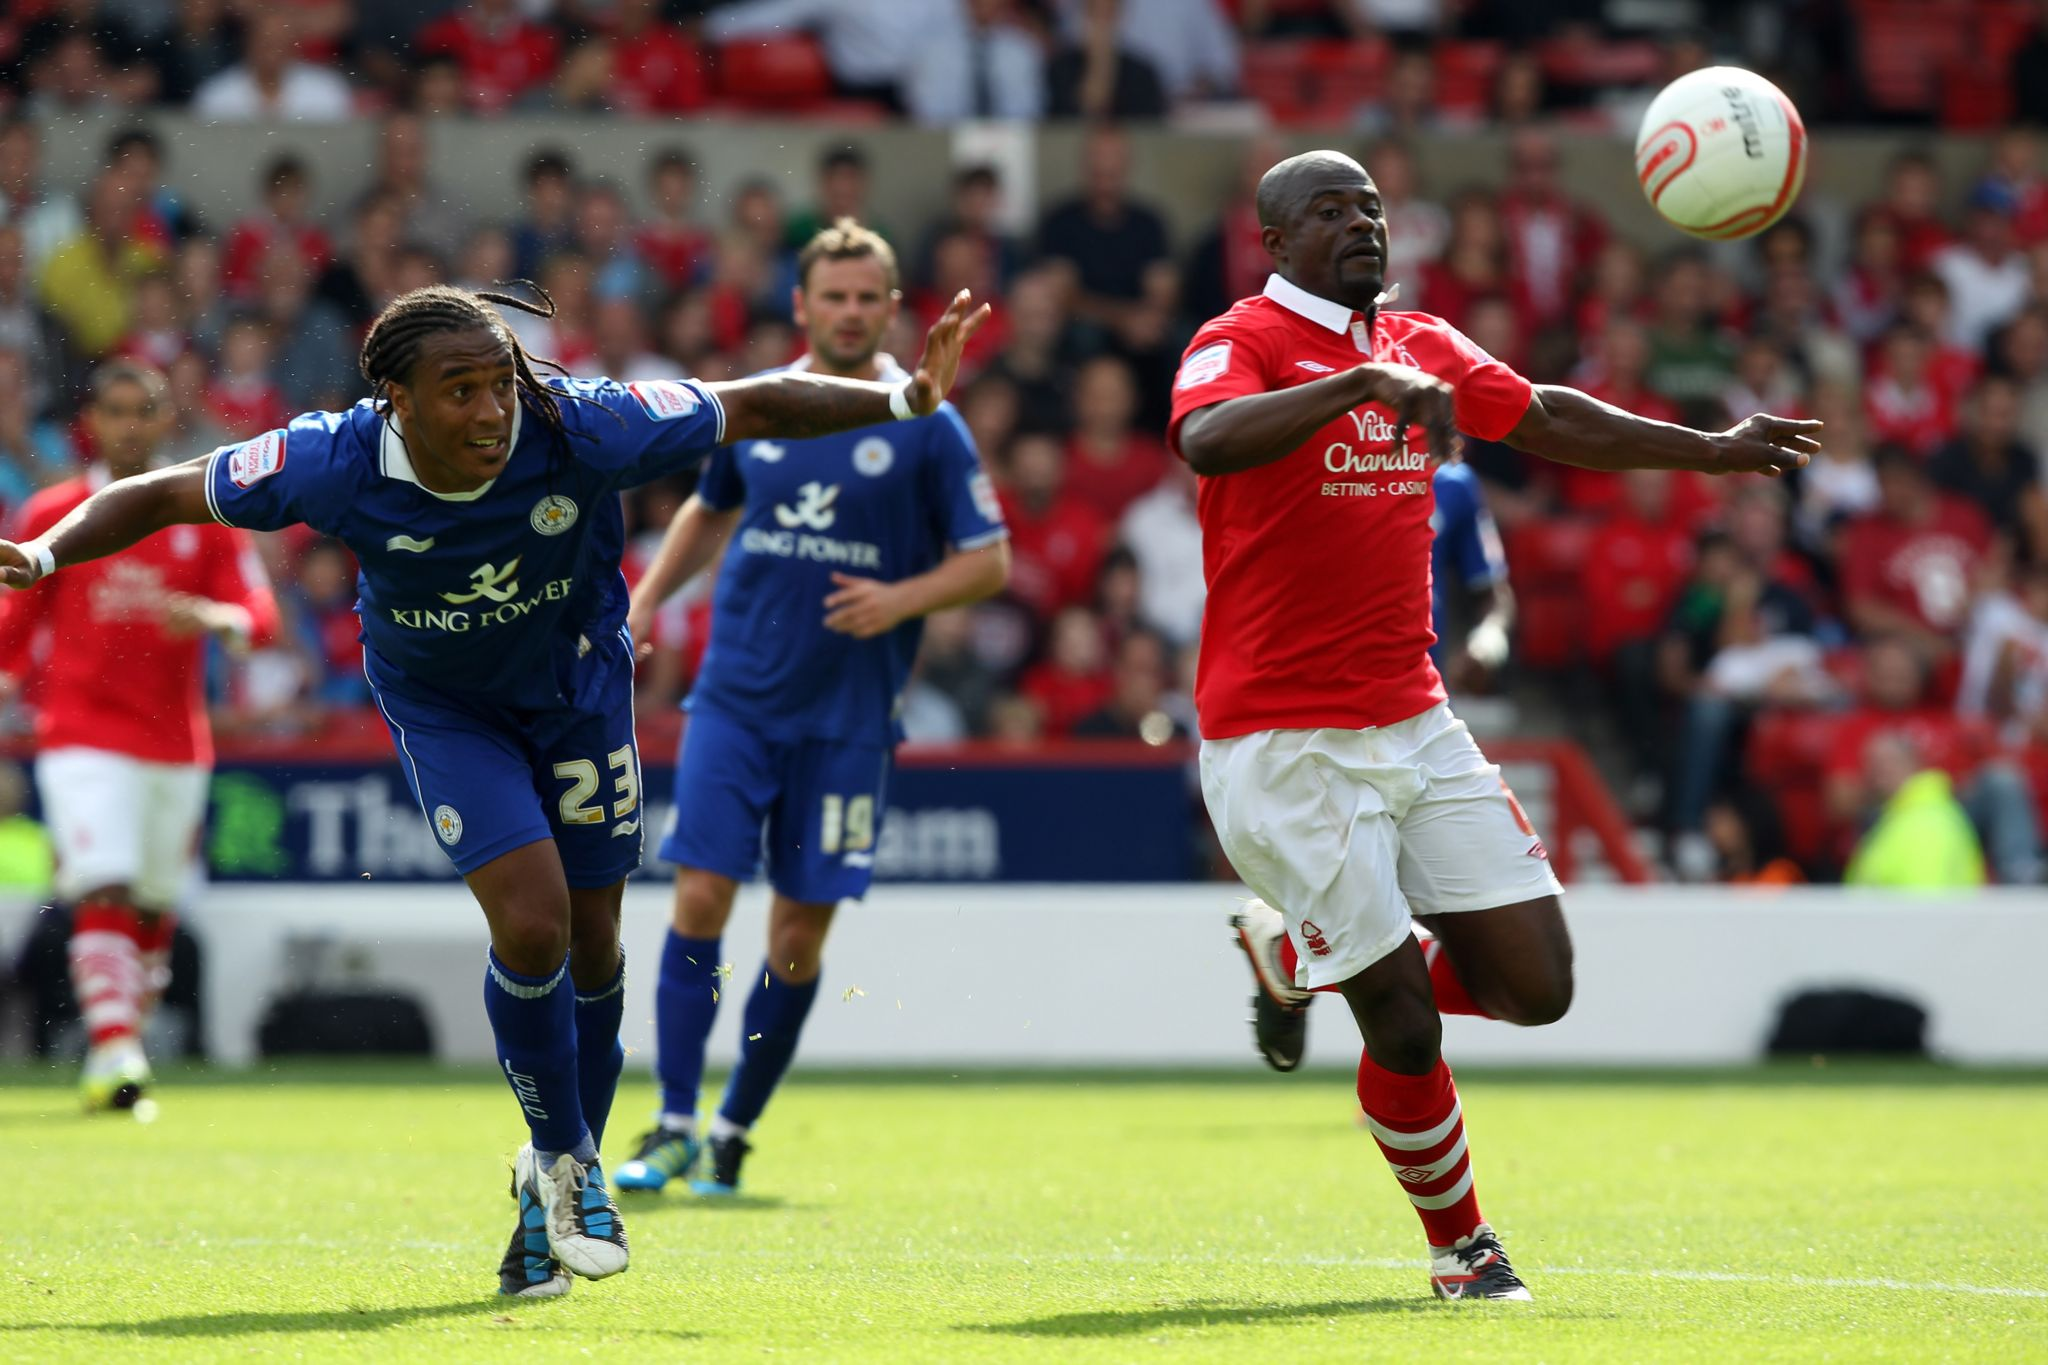 George Boateng at Forest